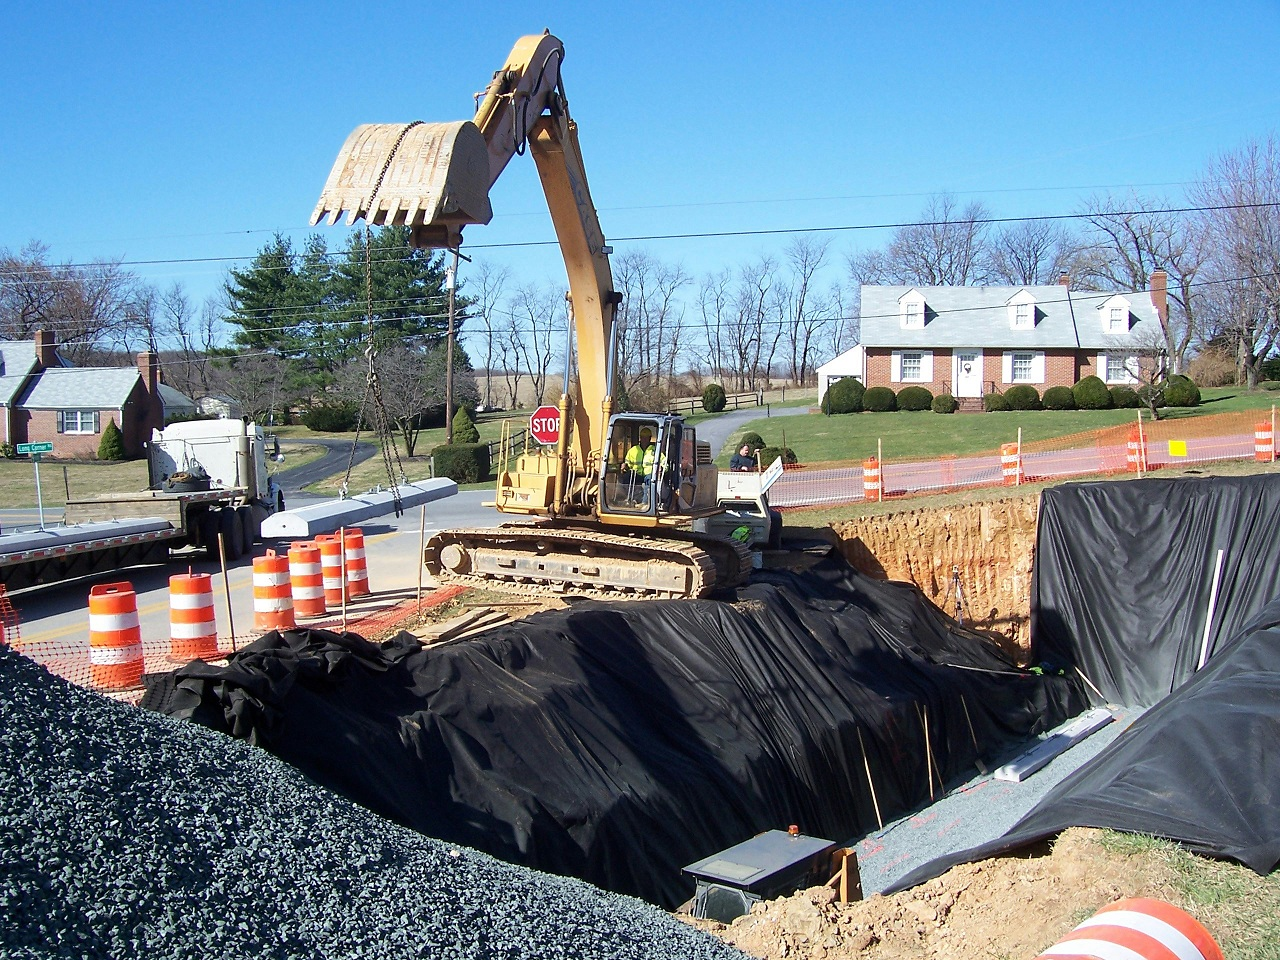 using a backhoe to dig the hole for an underground storage tank